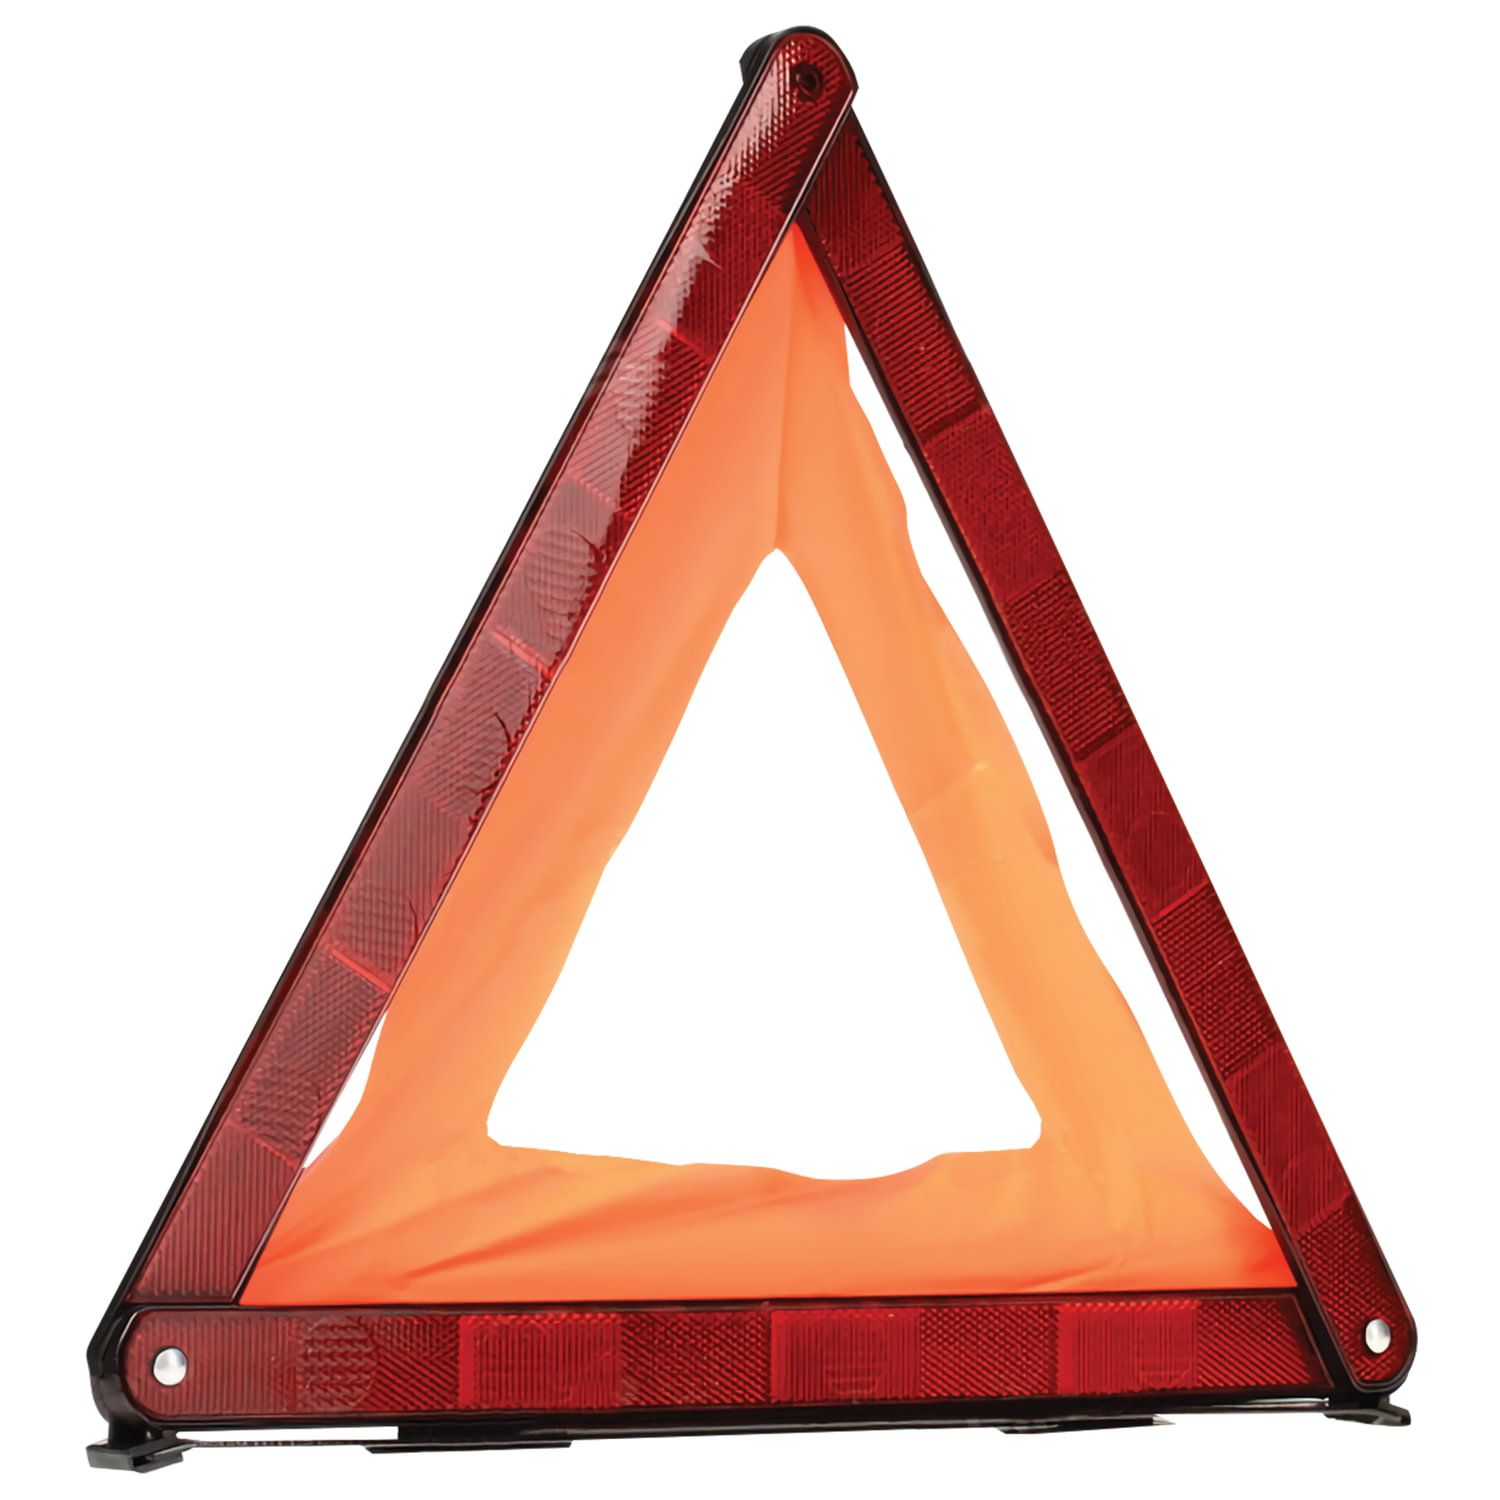 AIRLINE / Warning triangle, reinforced case, plastic case